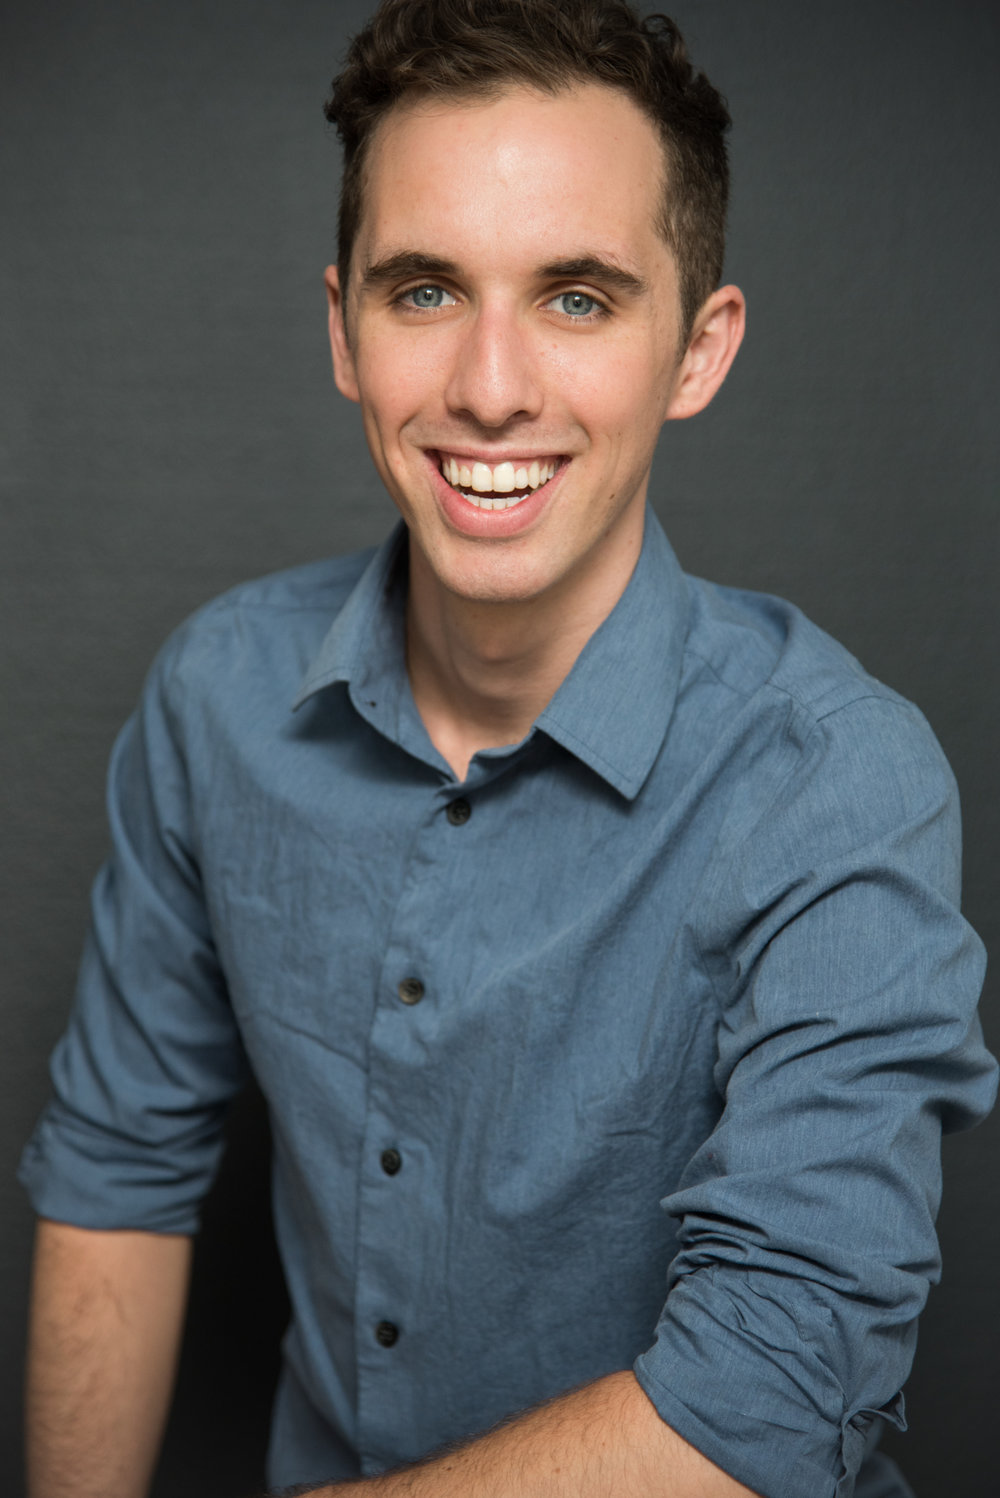 Ethan Santo(Teasil) - is an actor, writer, comedian and pun aficionado based in Austin, TX. He is a two-time cat dad and one hell of a dance partner. Instagram: @ethancainsanto